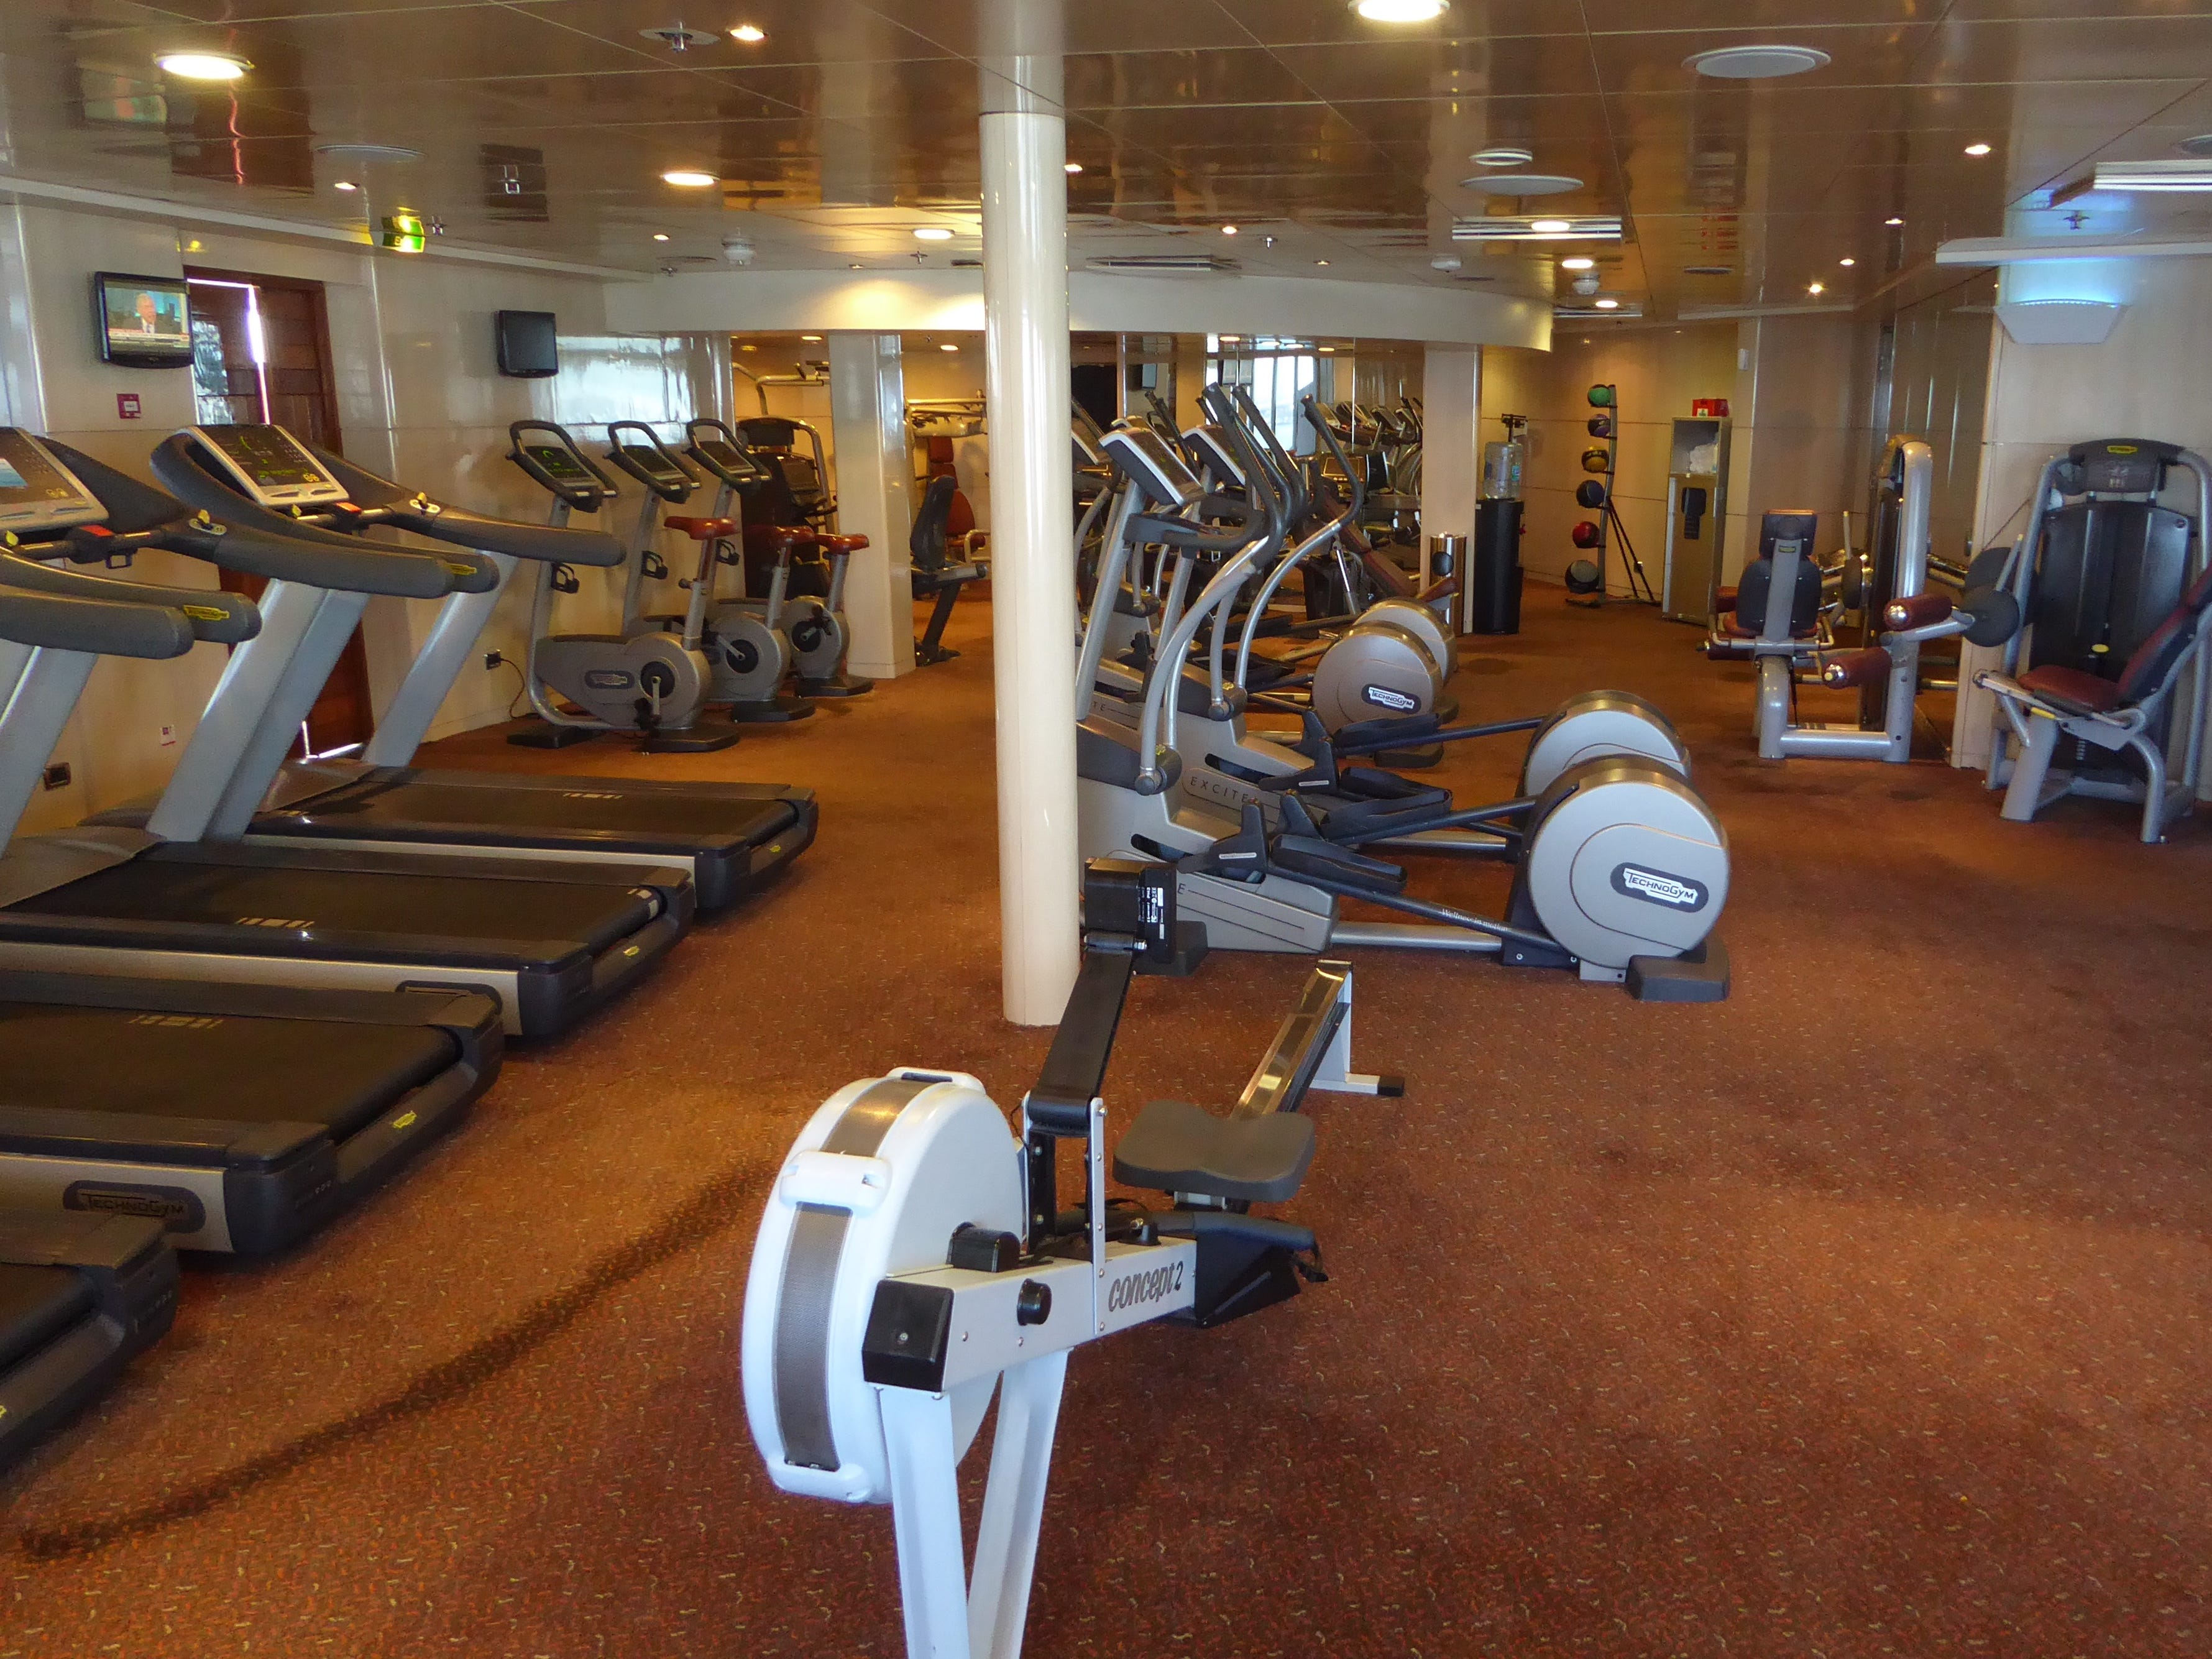 Accessed via the Indulgence Spa, the well-equipped Ship Shape Fitness Center is available for guests' use, free of charge.